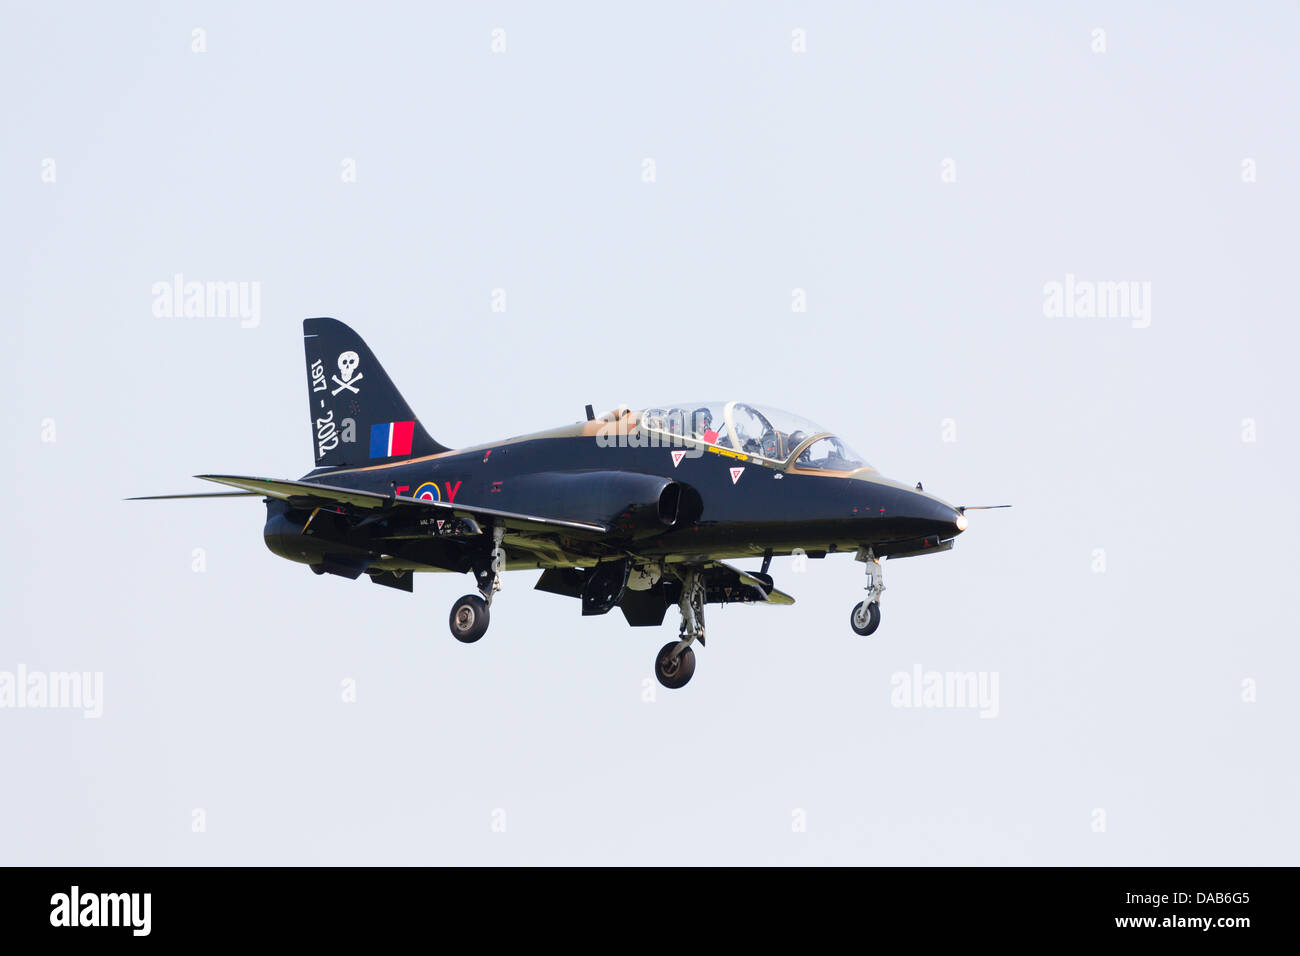 British Aerospace Hawk T1A trainer of 100 Squadron on approach to RAF Waddington Airshow 2013 - Stock Image